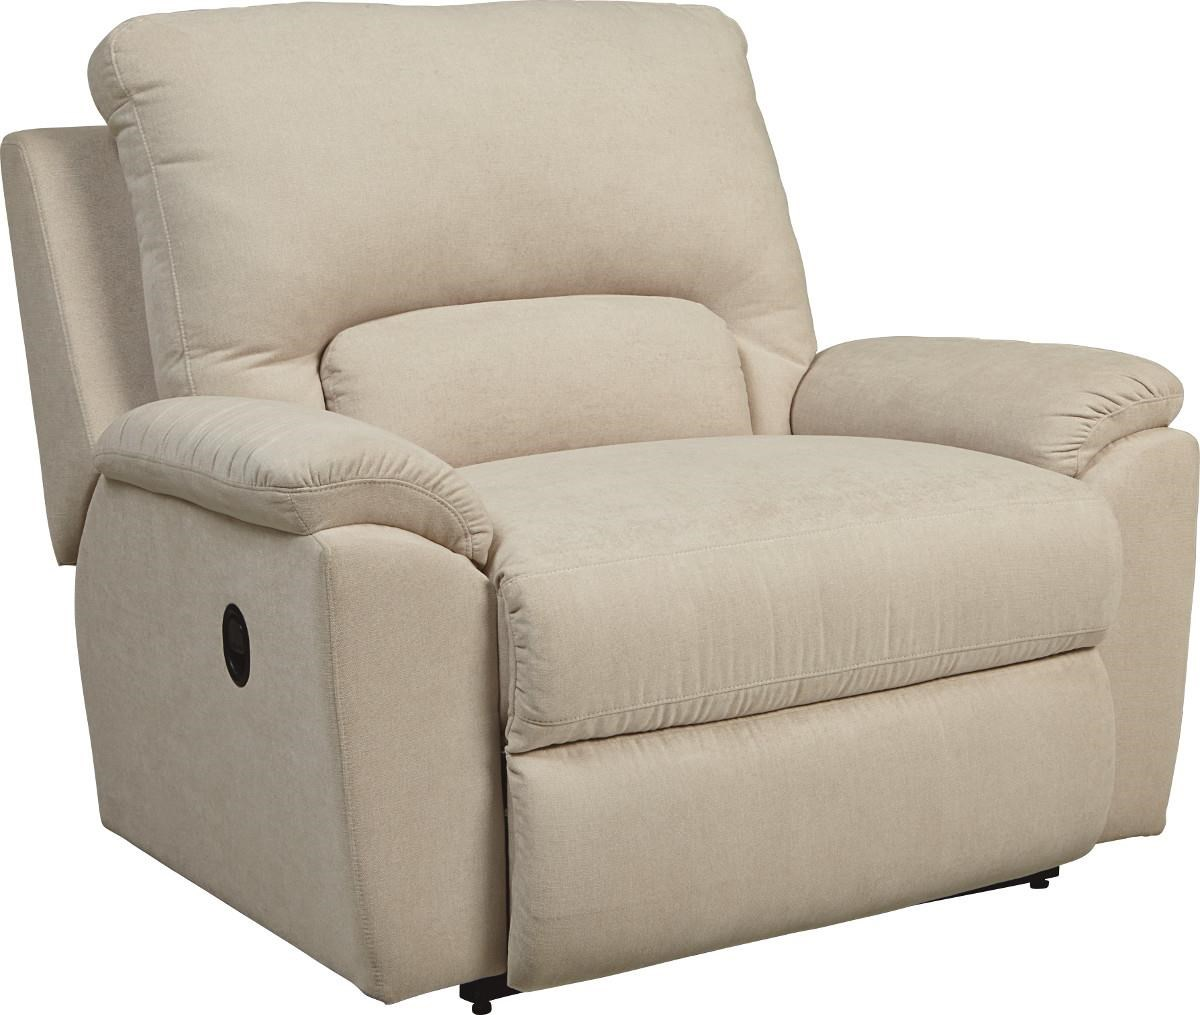 Recliner Shown May Not Represent Exact Features Indicated  sc 1 st  Morris Furniture & La-Z-Boy Charger La-Z-Time® Chair and a Half Recliner - Morris ... islam-shia.org